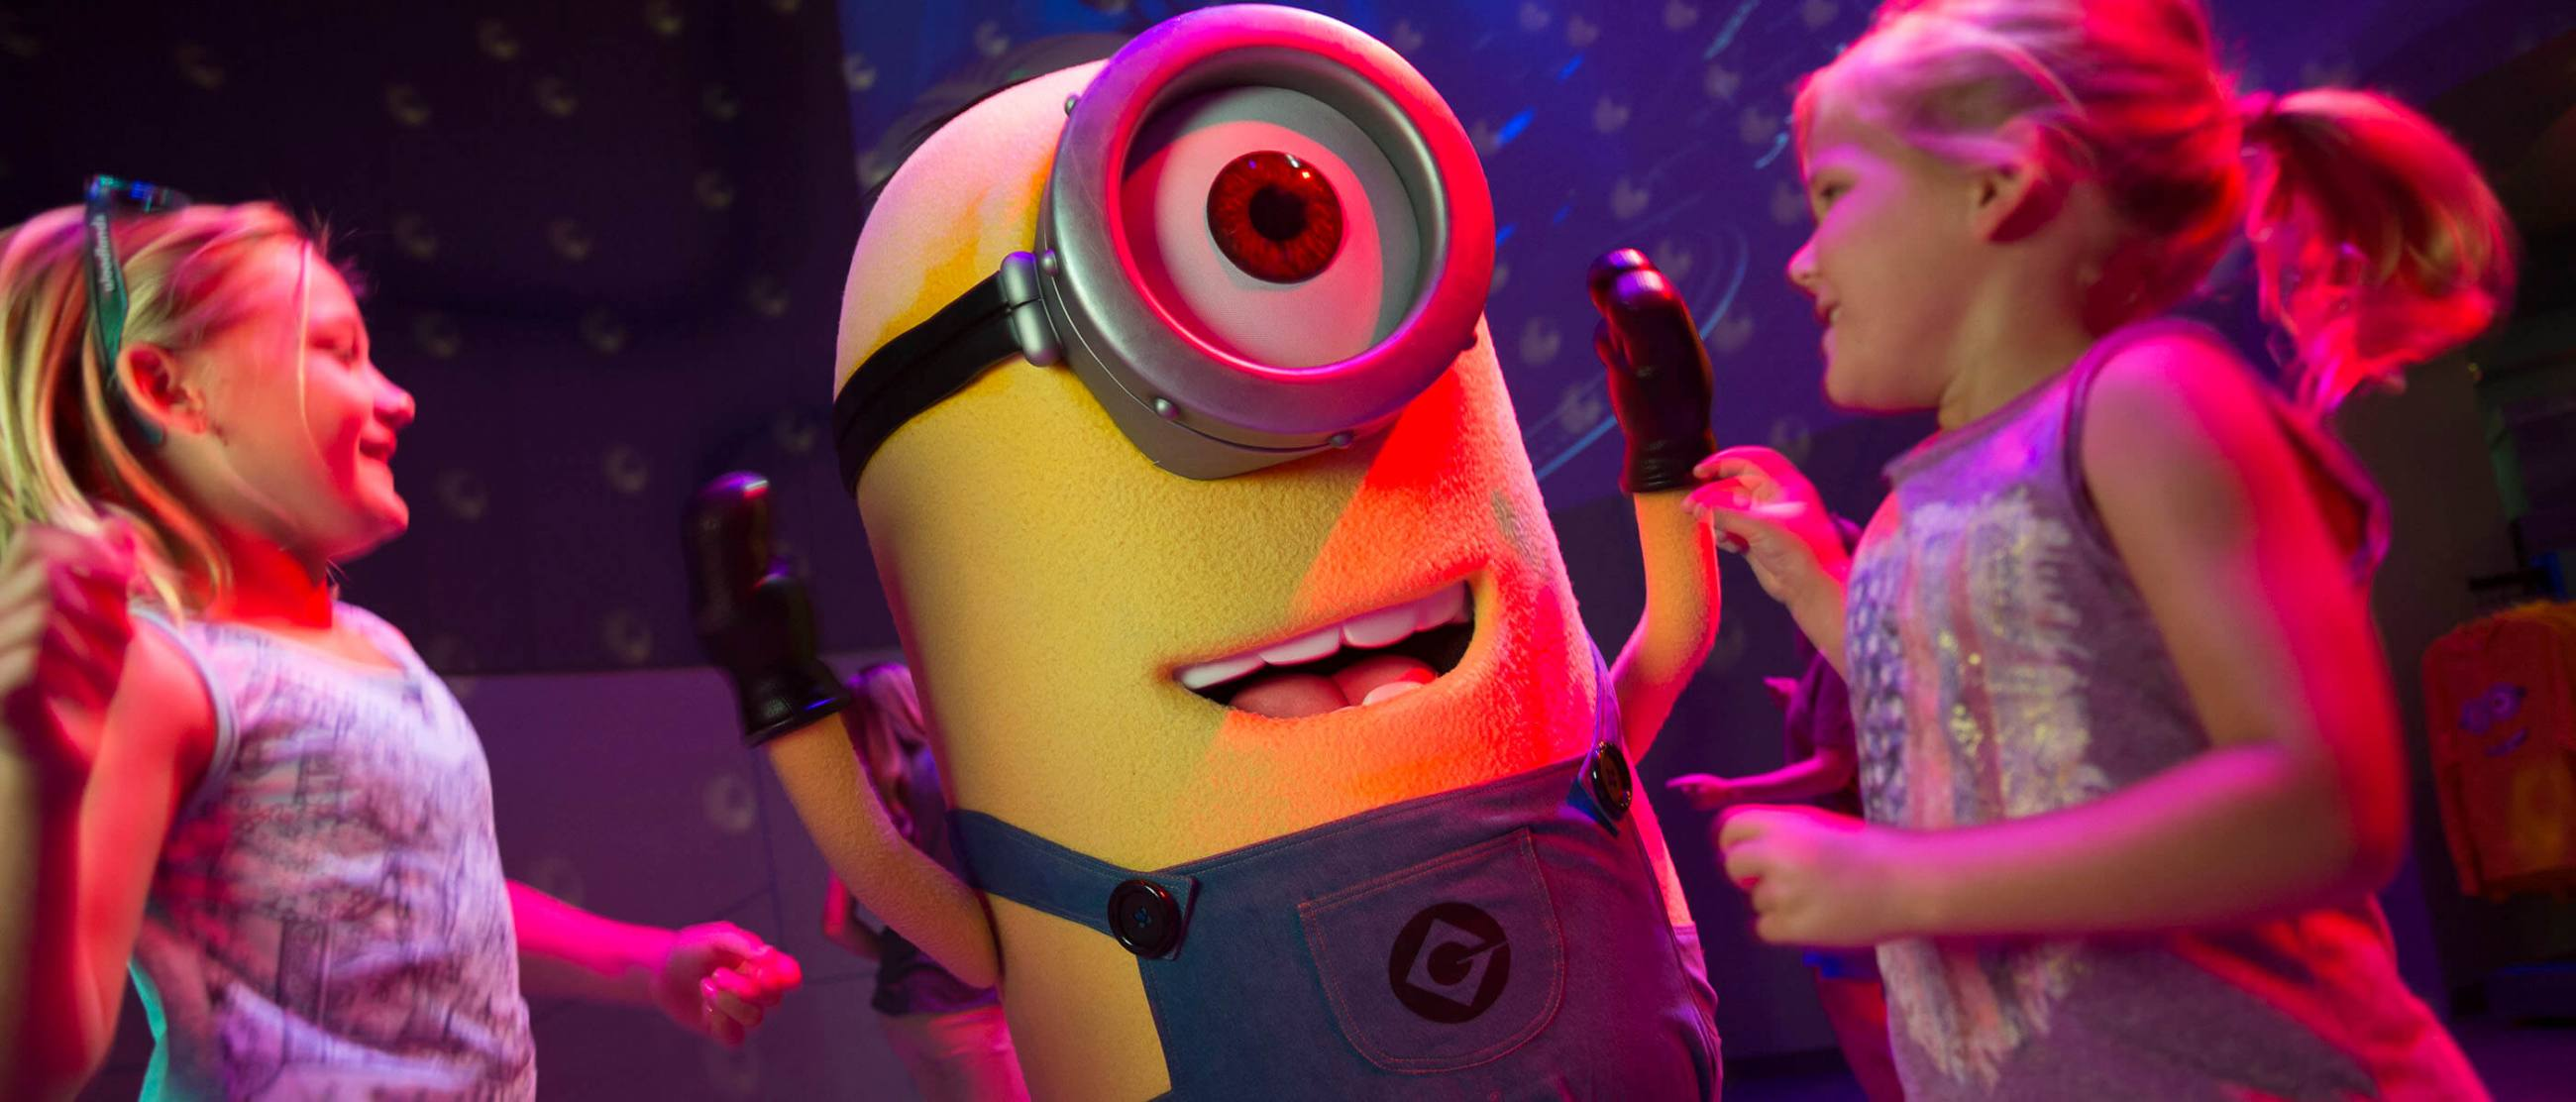 Despicable Me: Minion Mayhem at Universal Studios Hollywood